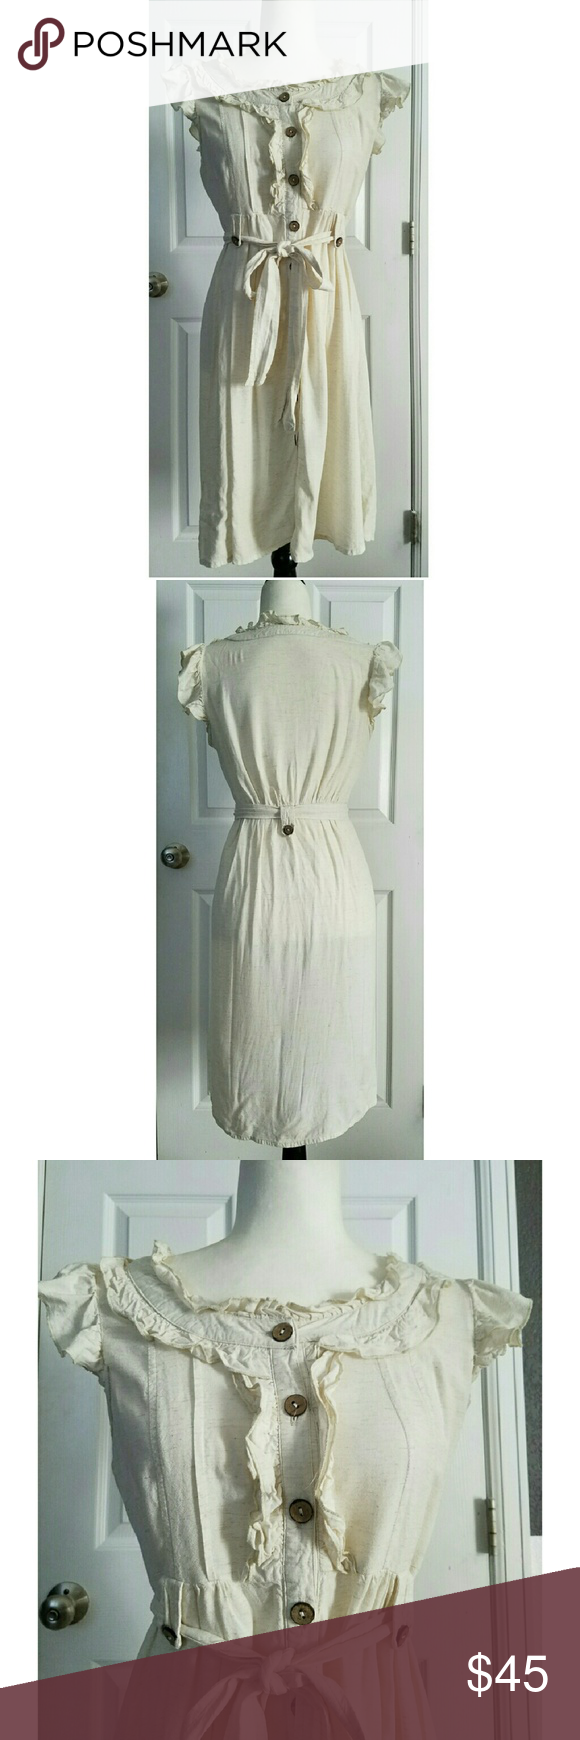 """Pink Martini vintage inspired dress Cream with light brown threading throughout. Wood buttons. In great condition. Approximately 36"""" shoulder to hem. Pit to pit laying flat across chest is approximately 17.5"""", waist laying flat across is 15.5"""". Labeled a medium.  I wear a 6 and it fits me. Pink Martini  Dresses Midi"""